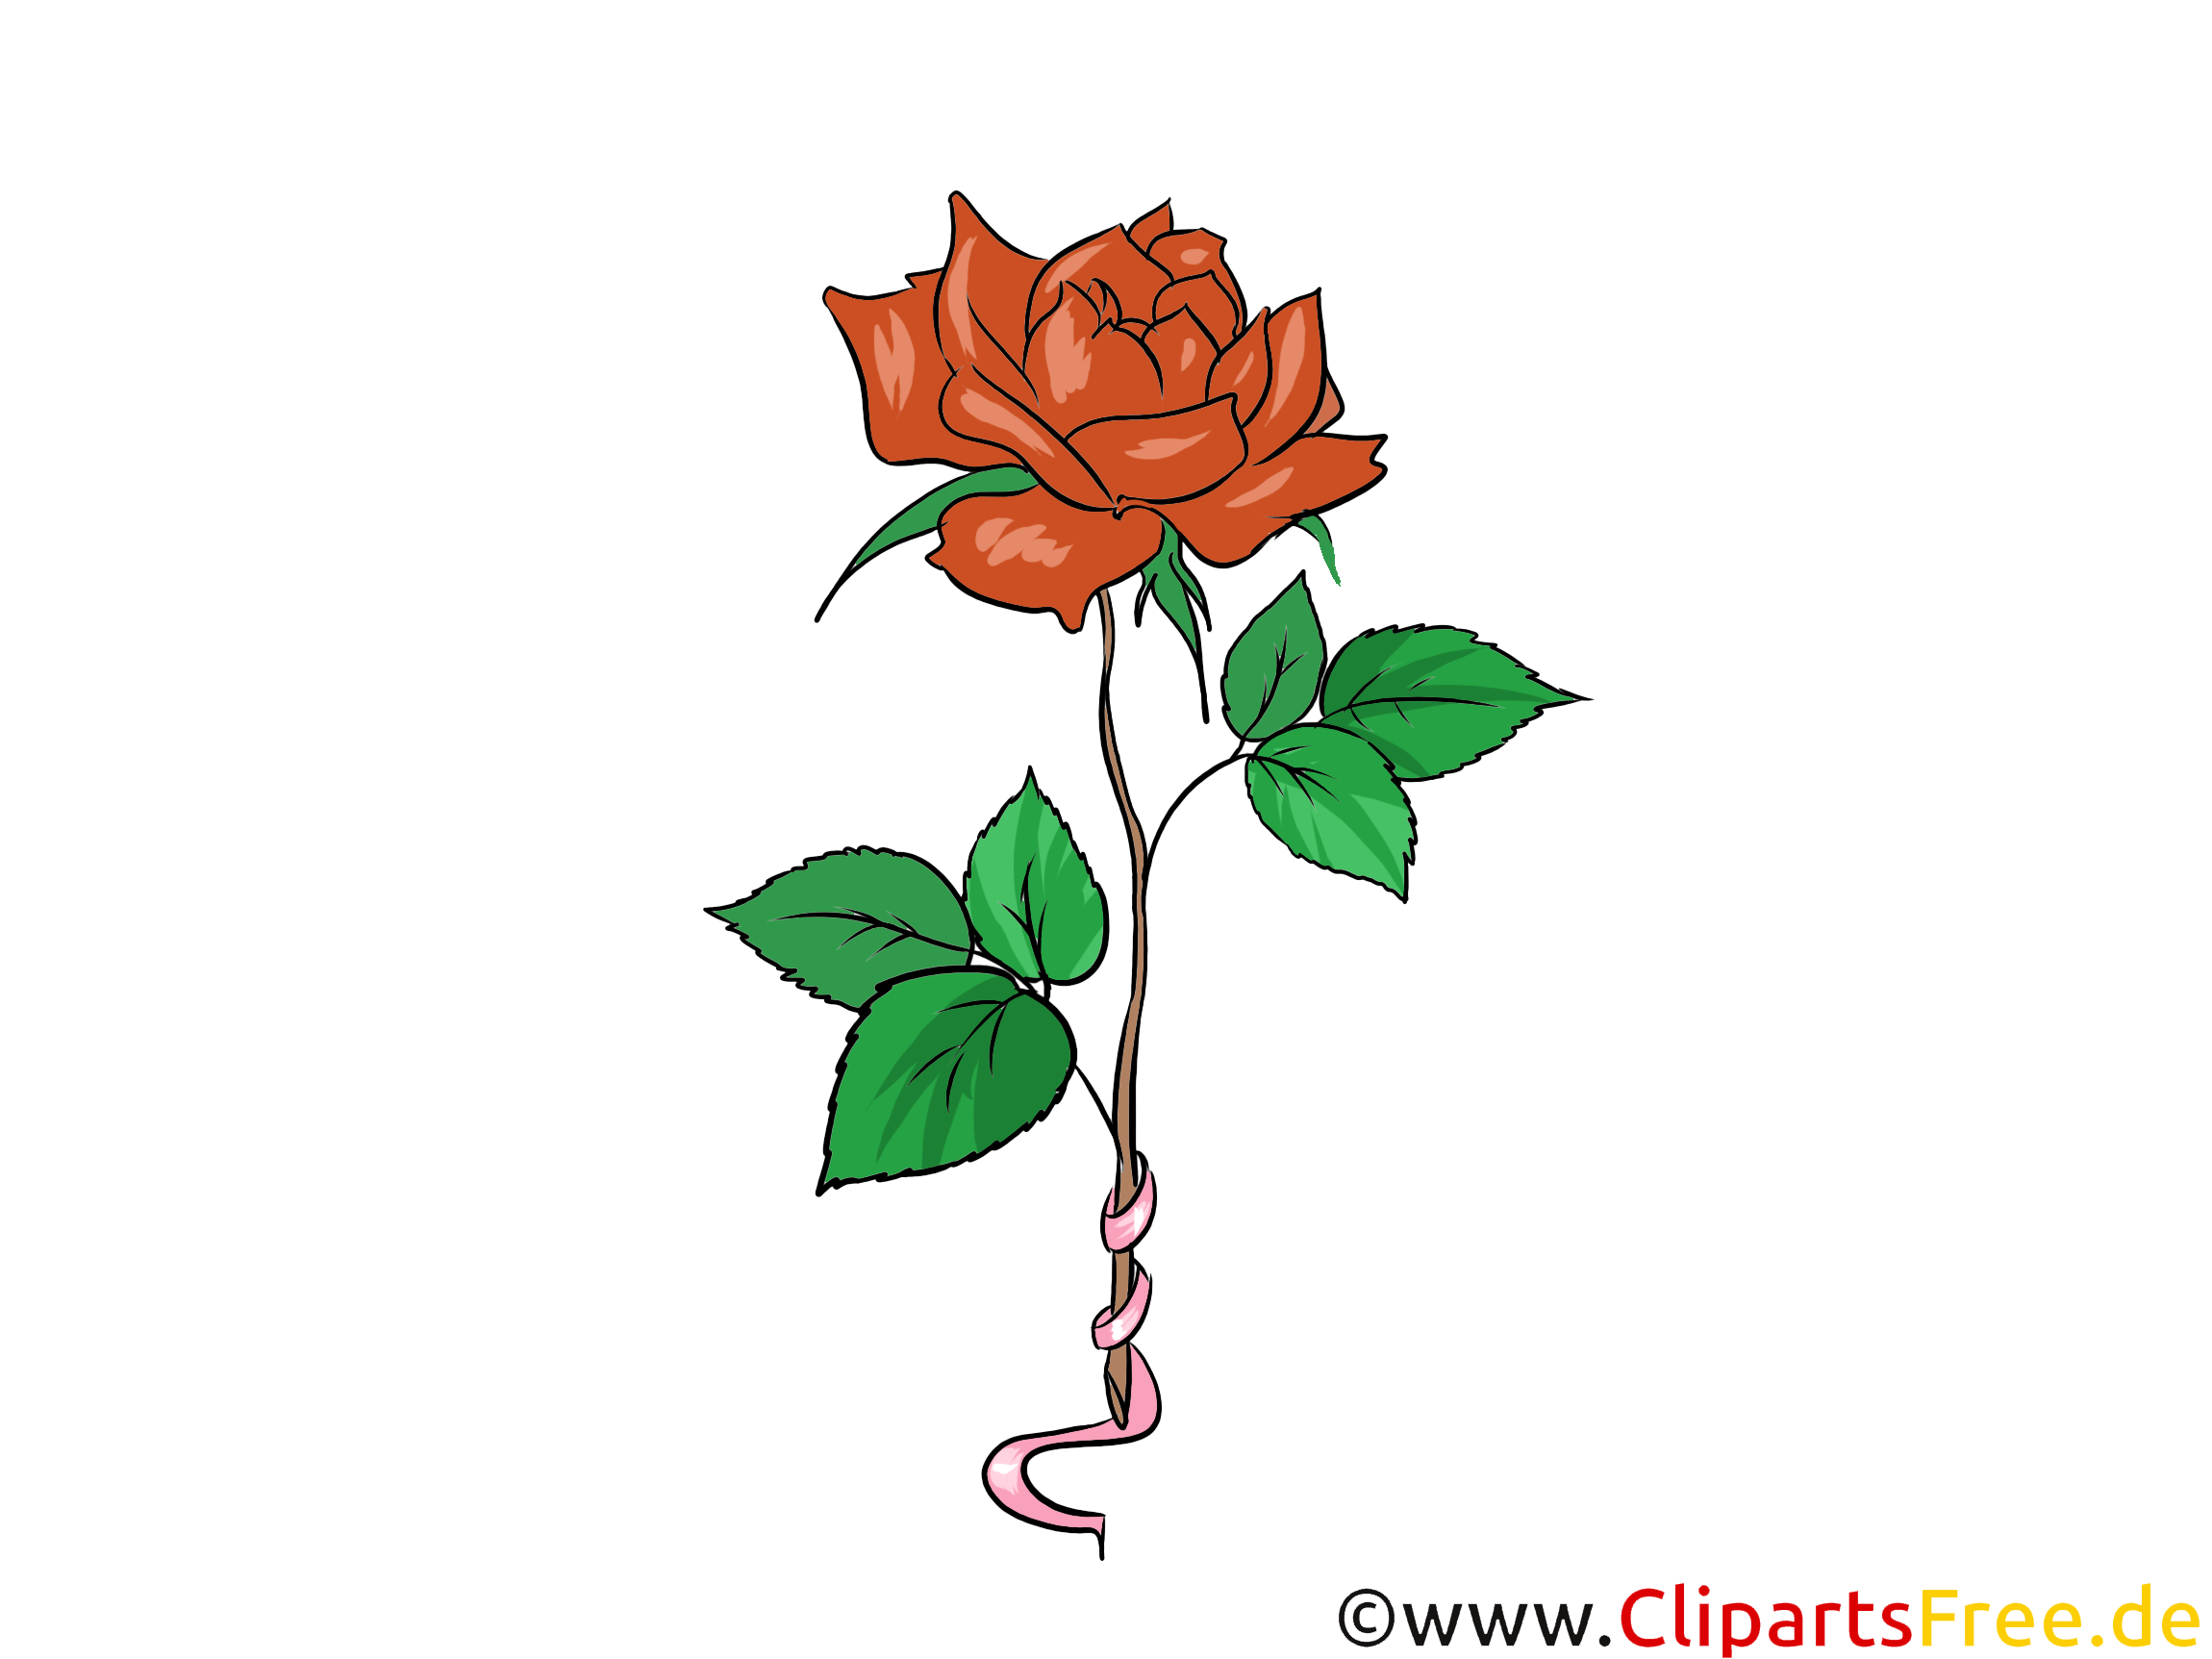 Red rose clipart download for free